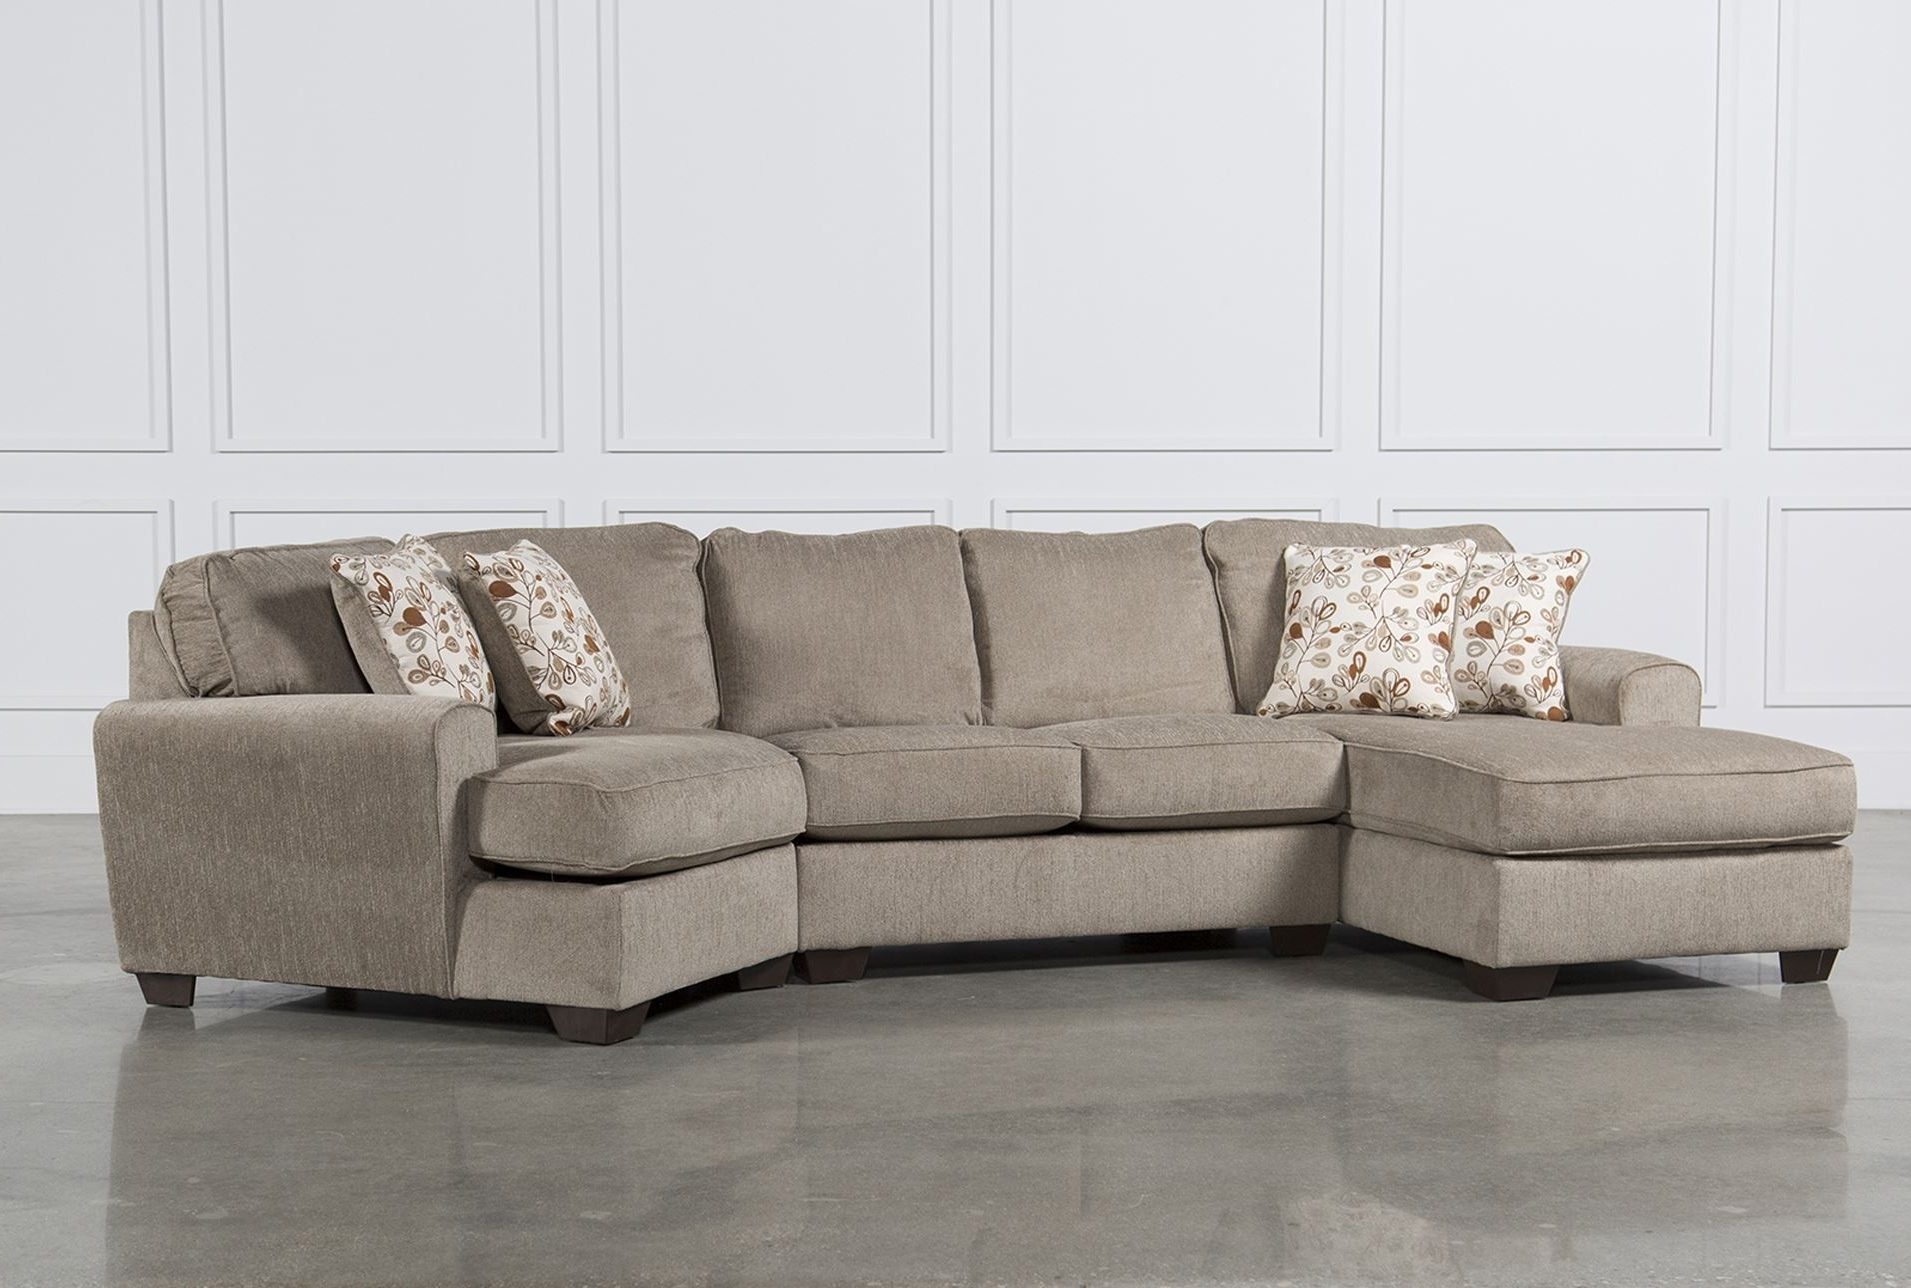 Sectional Sofas With Cuddler Chaise Within Most Recently Released Patola Park 4 Piece Sectional W Raf Cuddler Living Spaces In Sofa (View 12 of 15)